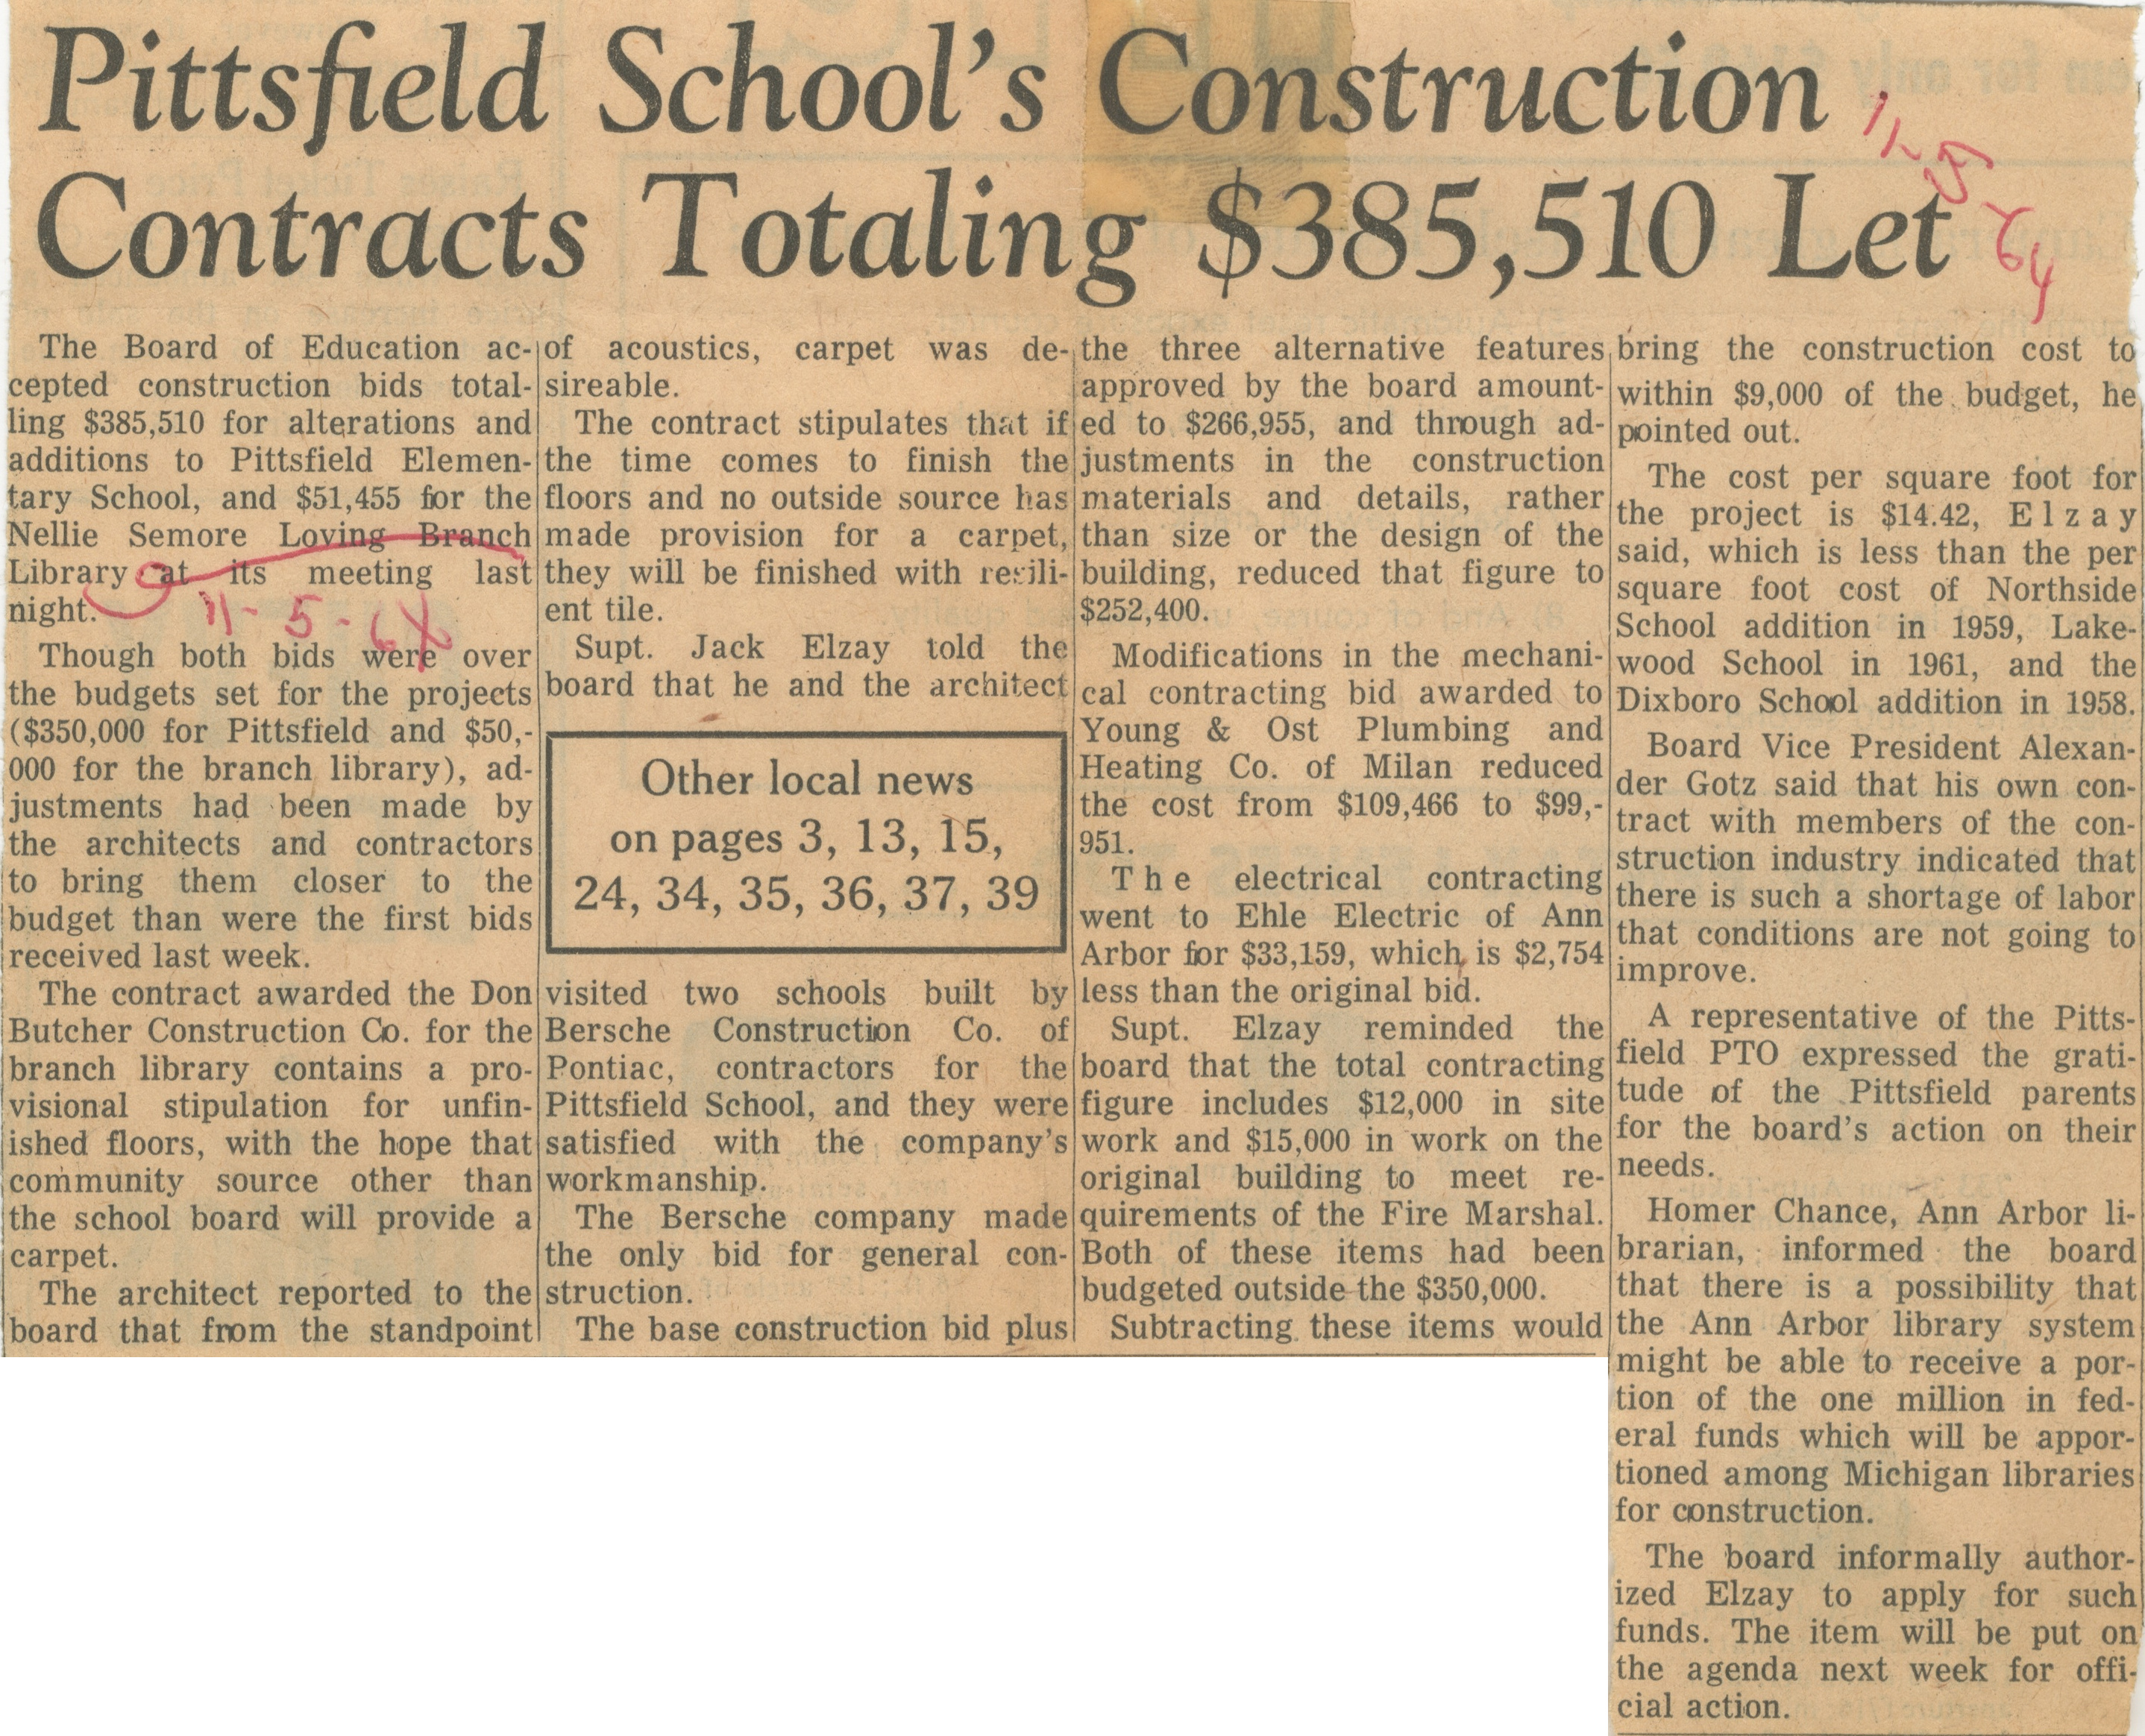 Pittsfield School's Construction Contracts Totaling $385, 510 Let image